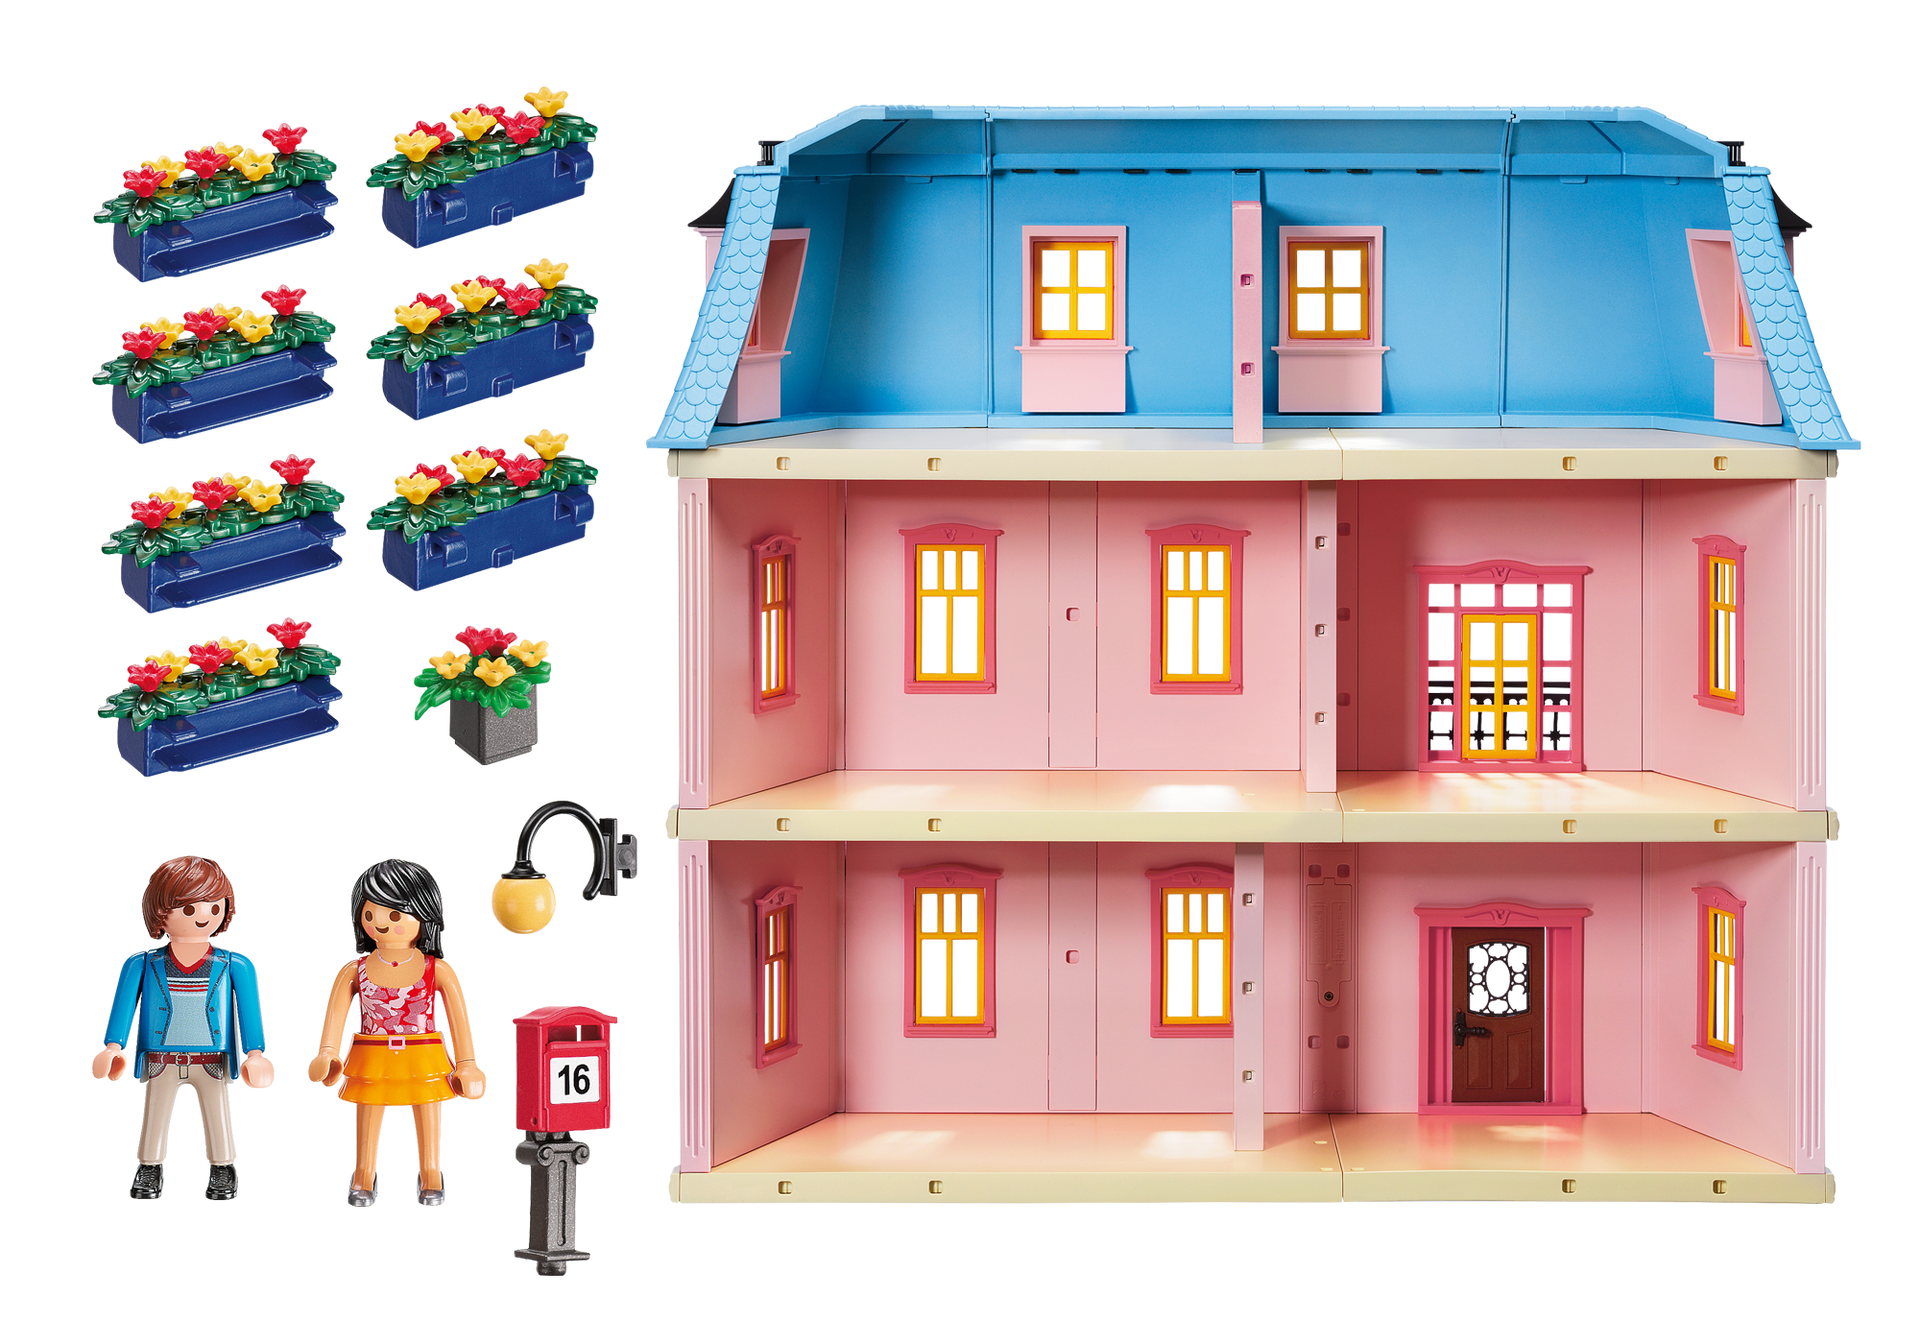 Room clipart dollhouse. Deluxe playmobil usa httpmediaplaymobilcomiplaymobilproductboxback